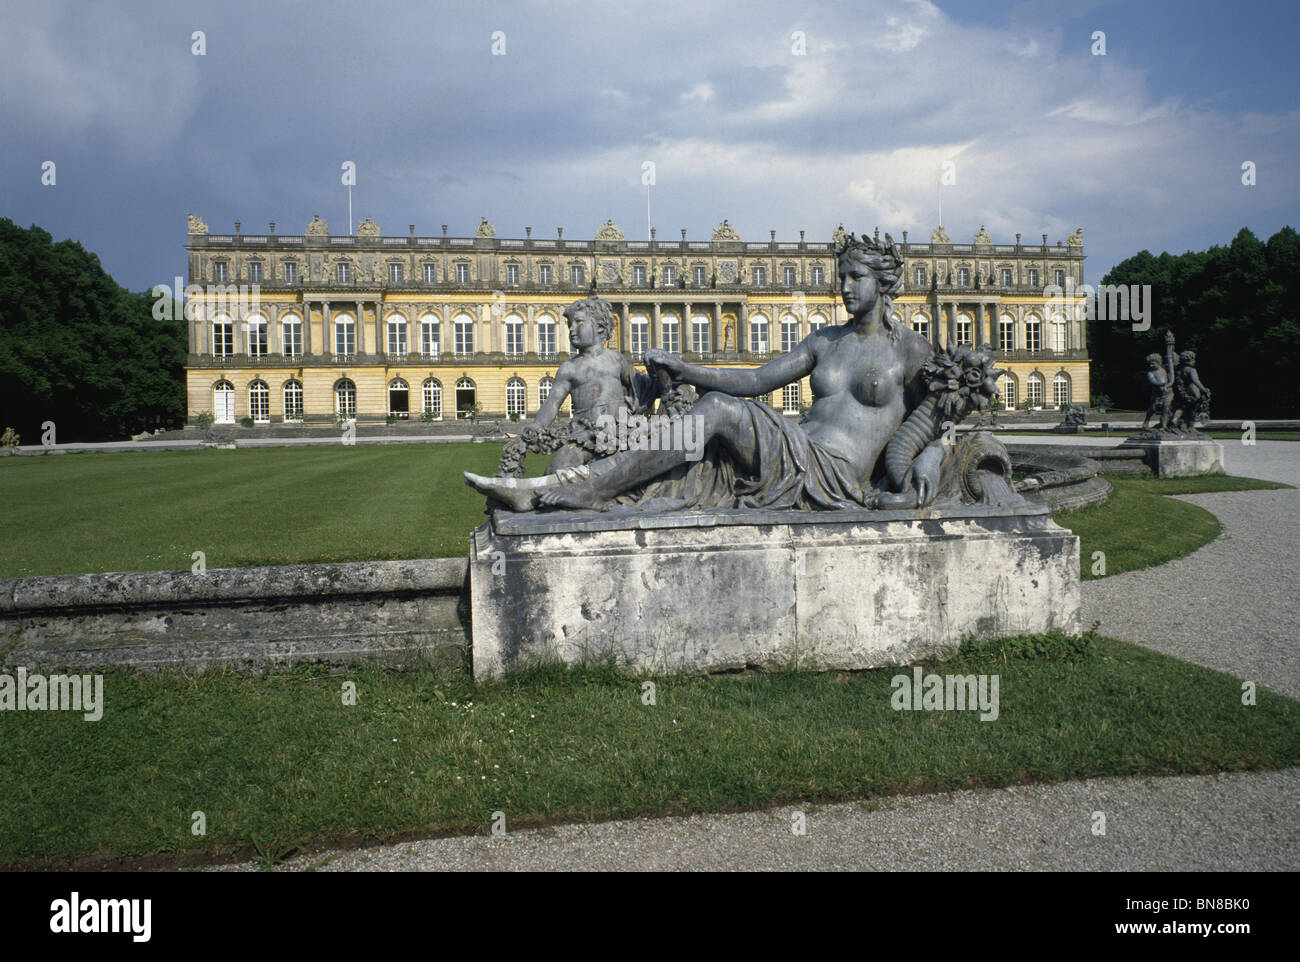 Herrenchiemsee Bavaria built by Mad Ludwig II of Bavaria 1878-1885 inspired by Versailles. - Stock Image